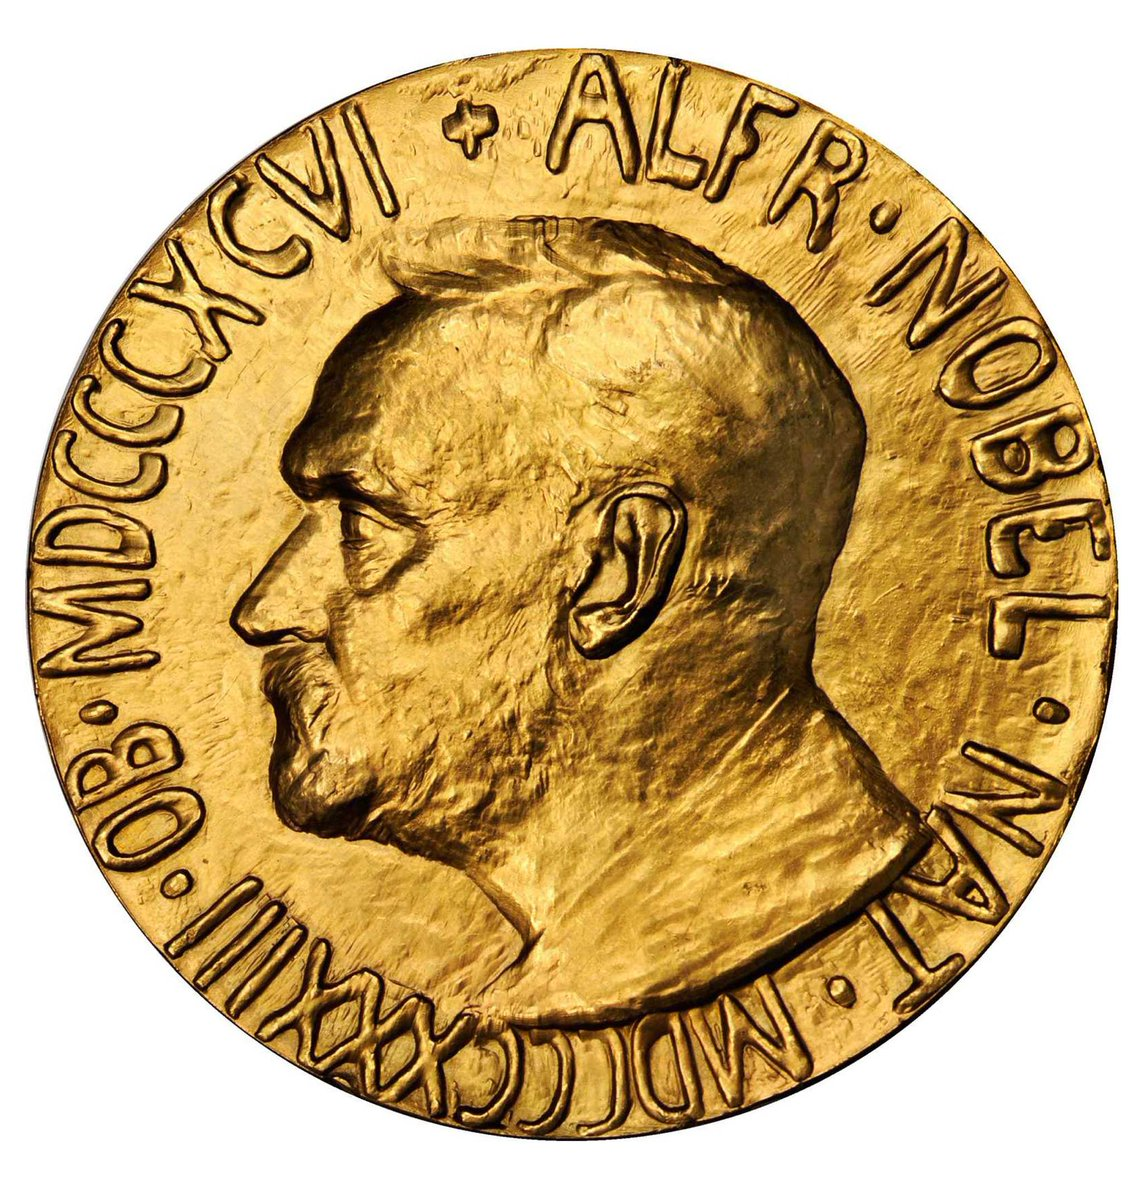 Adolf Hitler, Joseph Stalin and Benito Mussolini were all nominated for the Nobel Peace Prize. https://t.co/BiQjzWhfWU